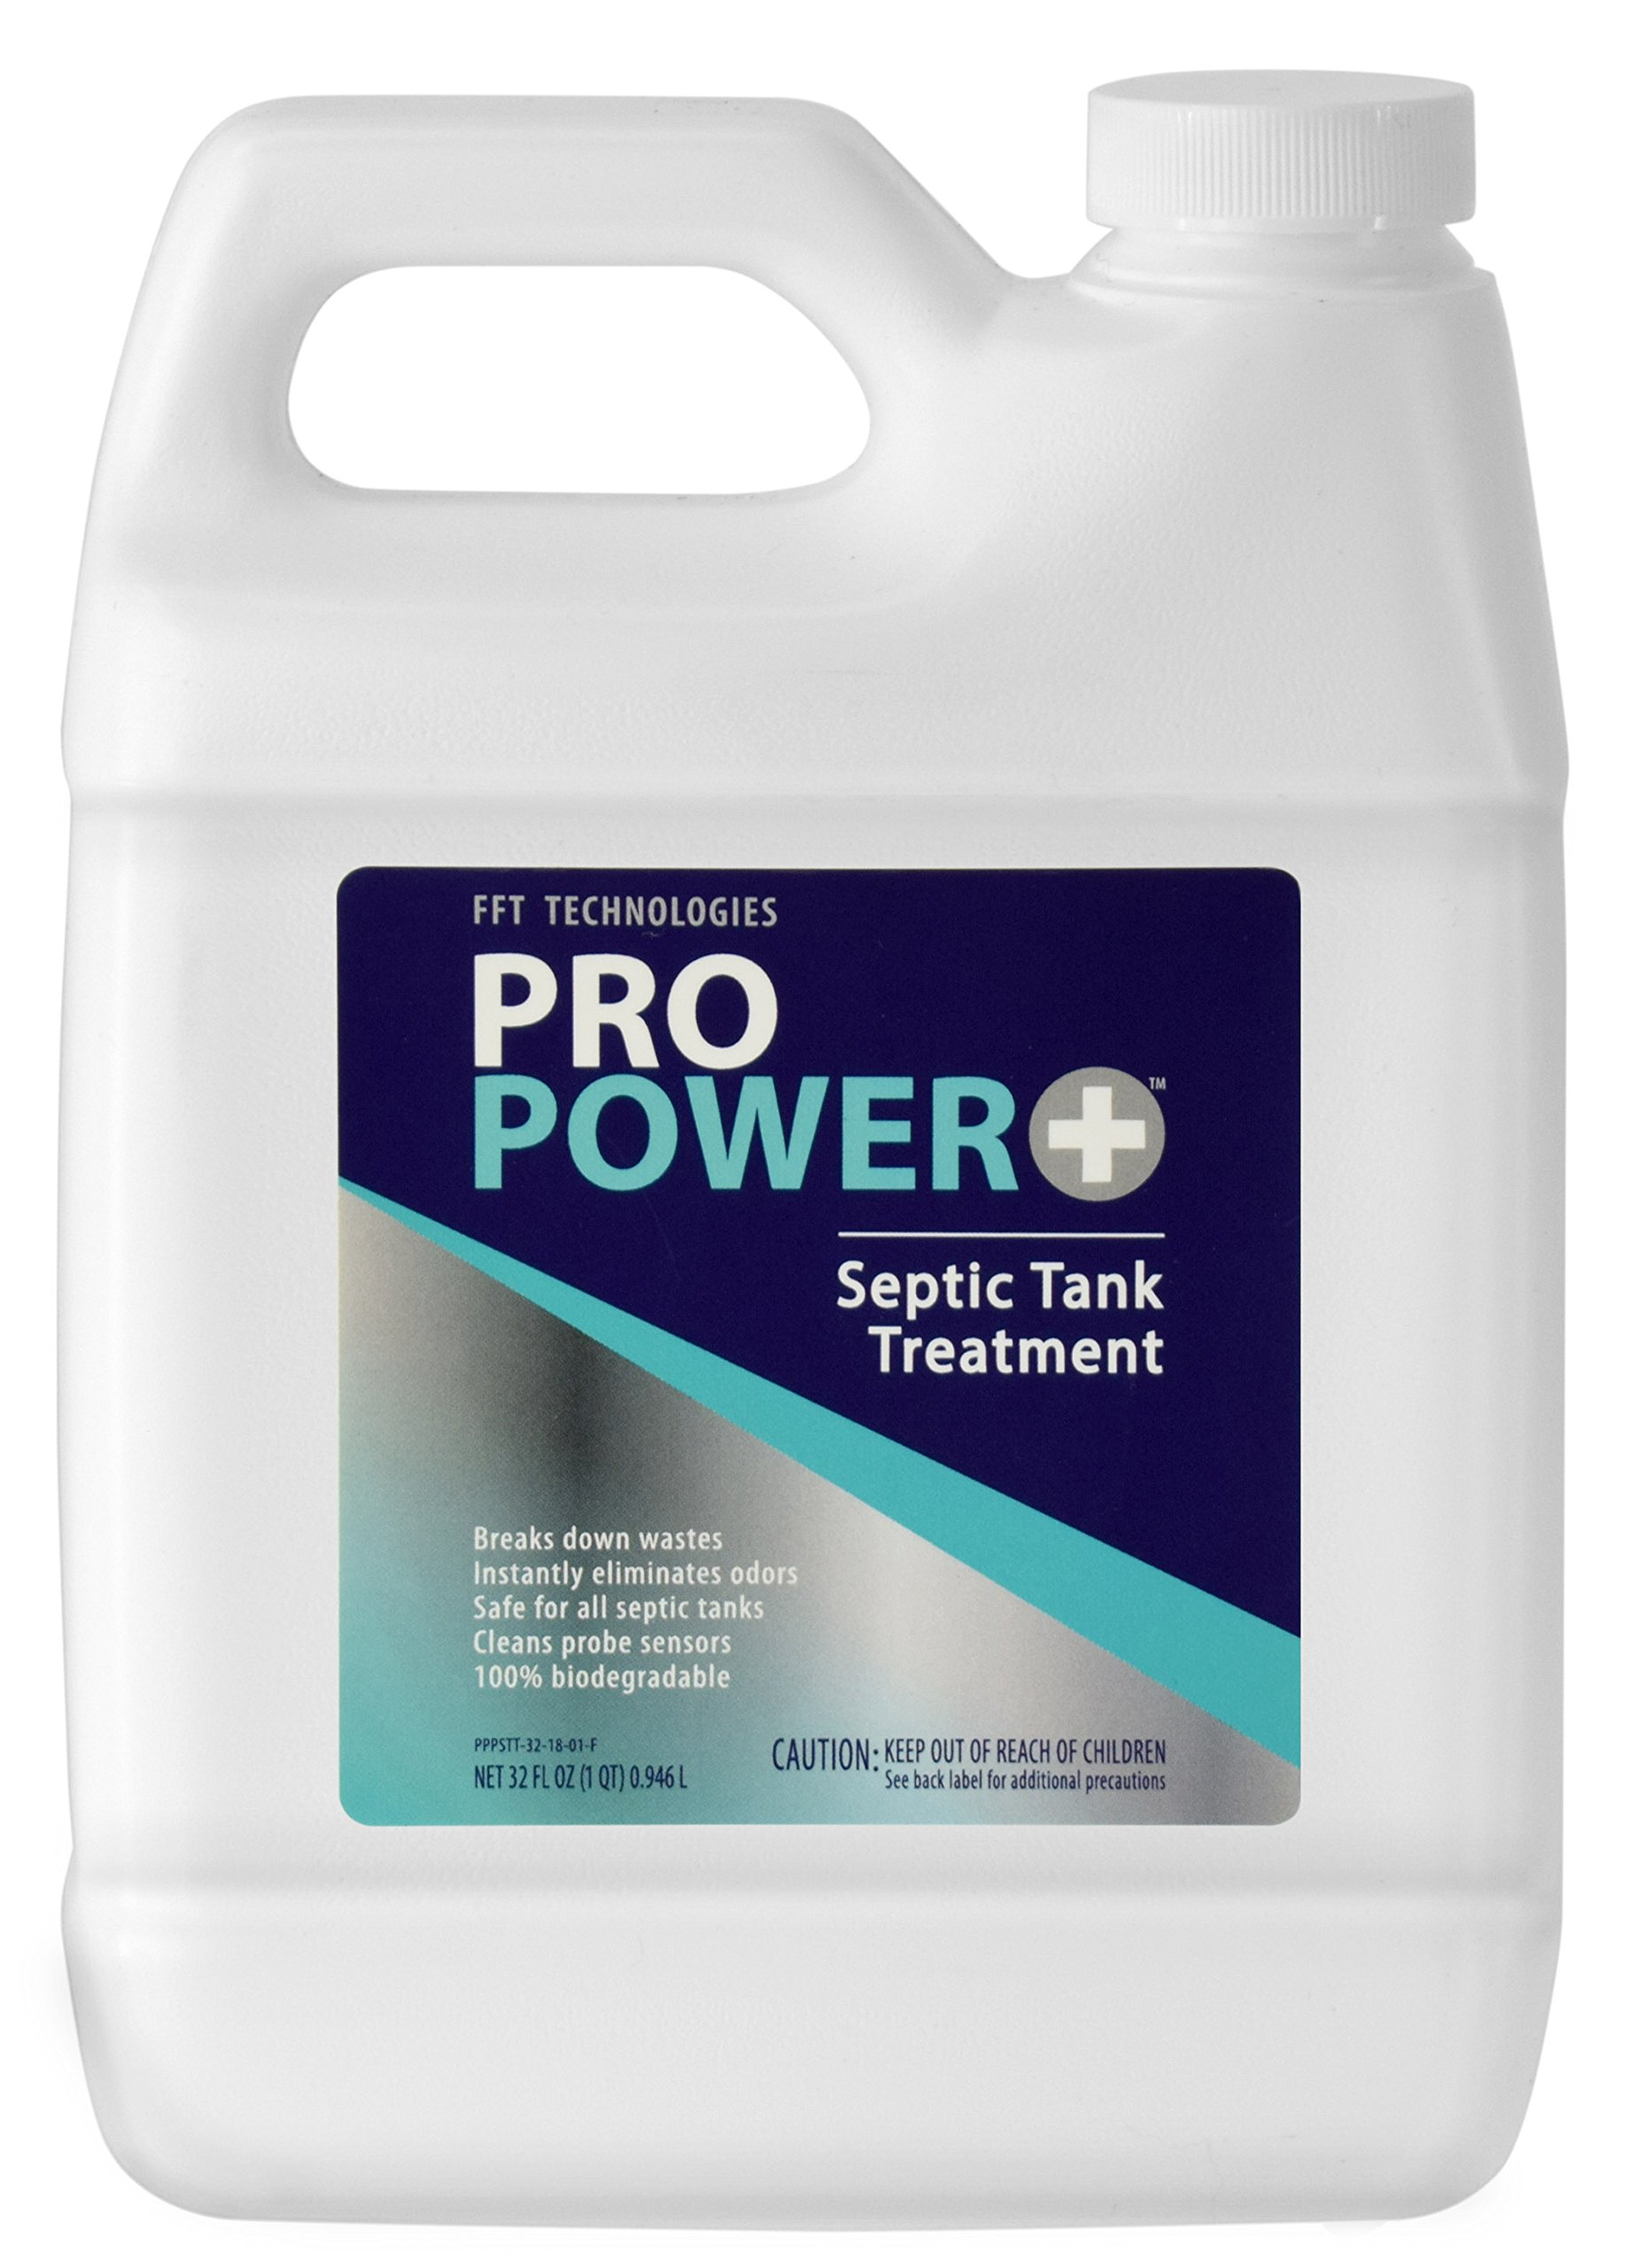 Industrial Strength Pro Power+ Septic & Holding Tank Cleaner - 100% Biodegradable - 32 oz.